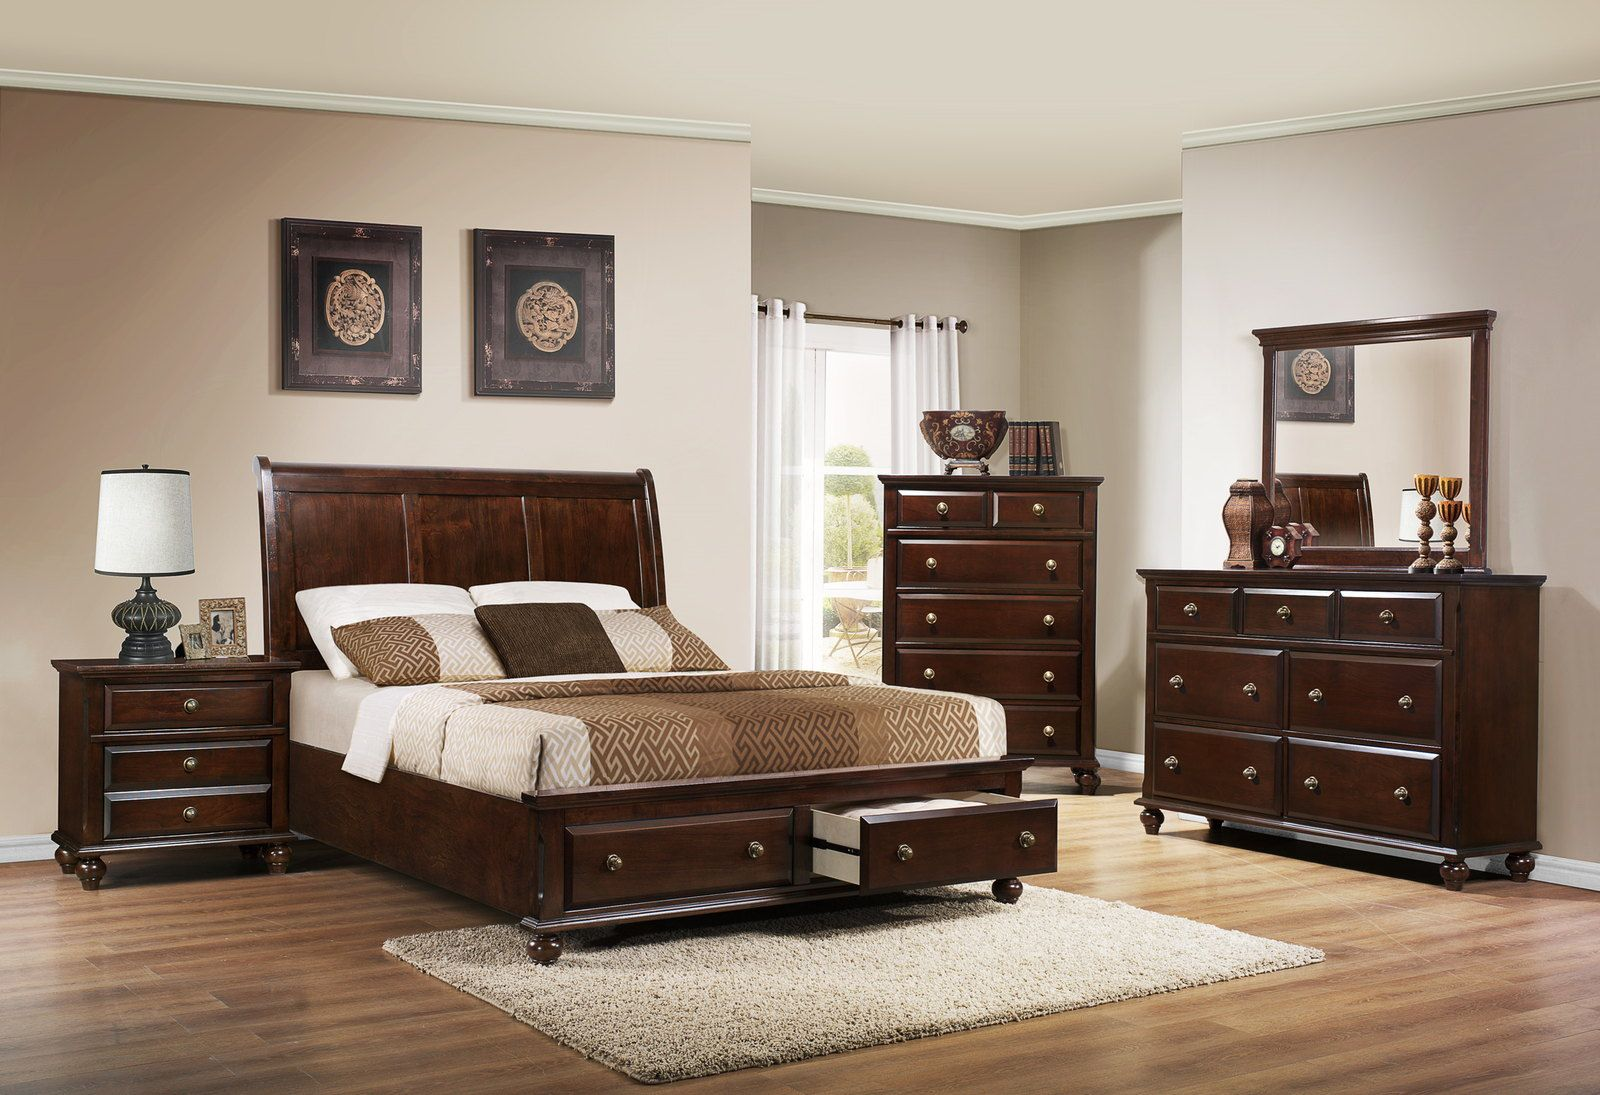 1020+ Value City Furniture Queen Size Bedroom Sets Best HD